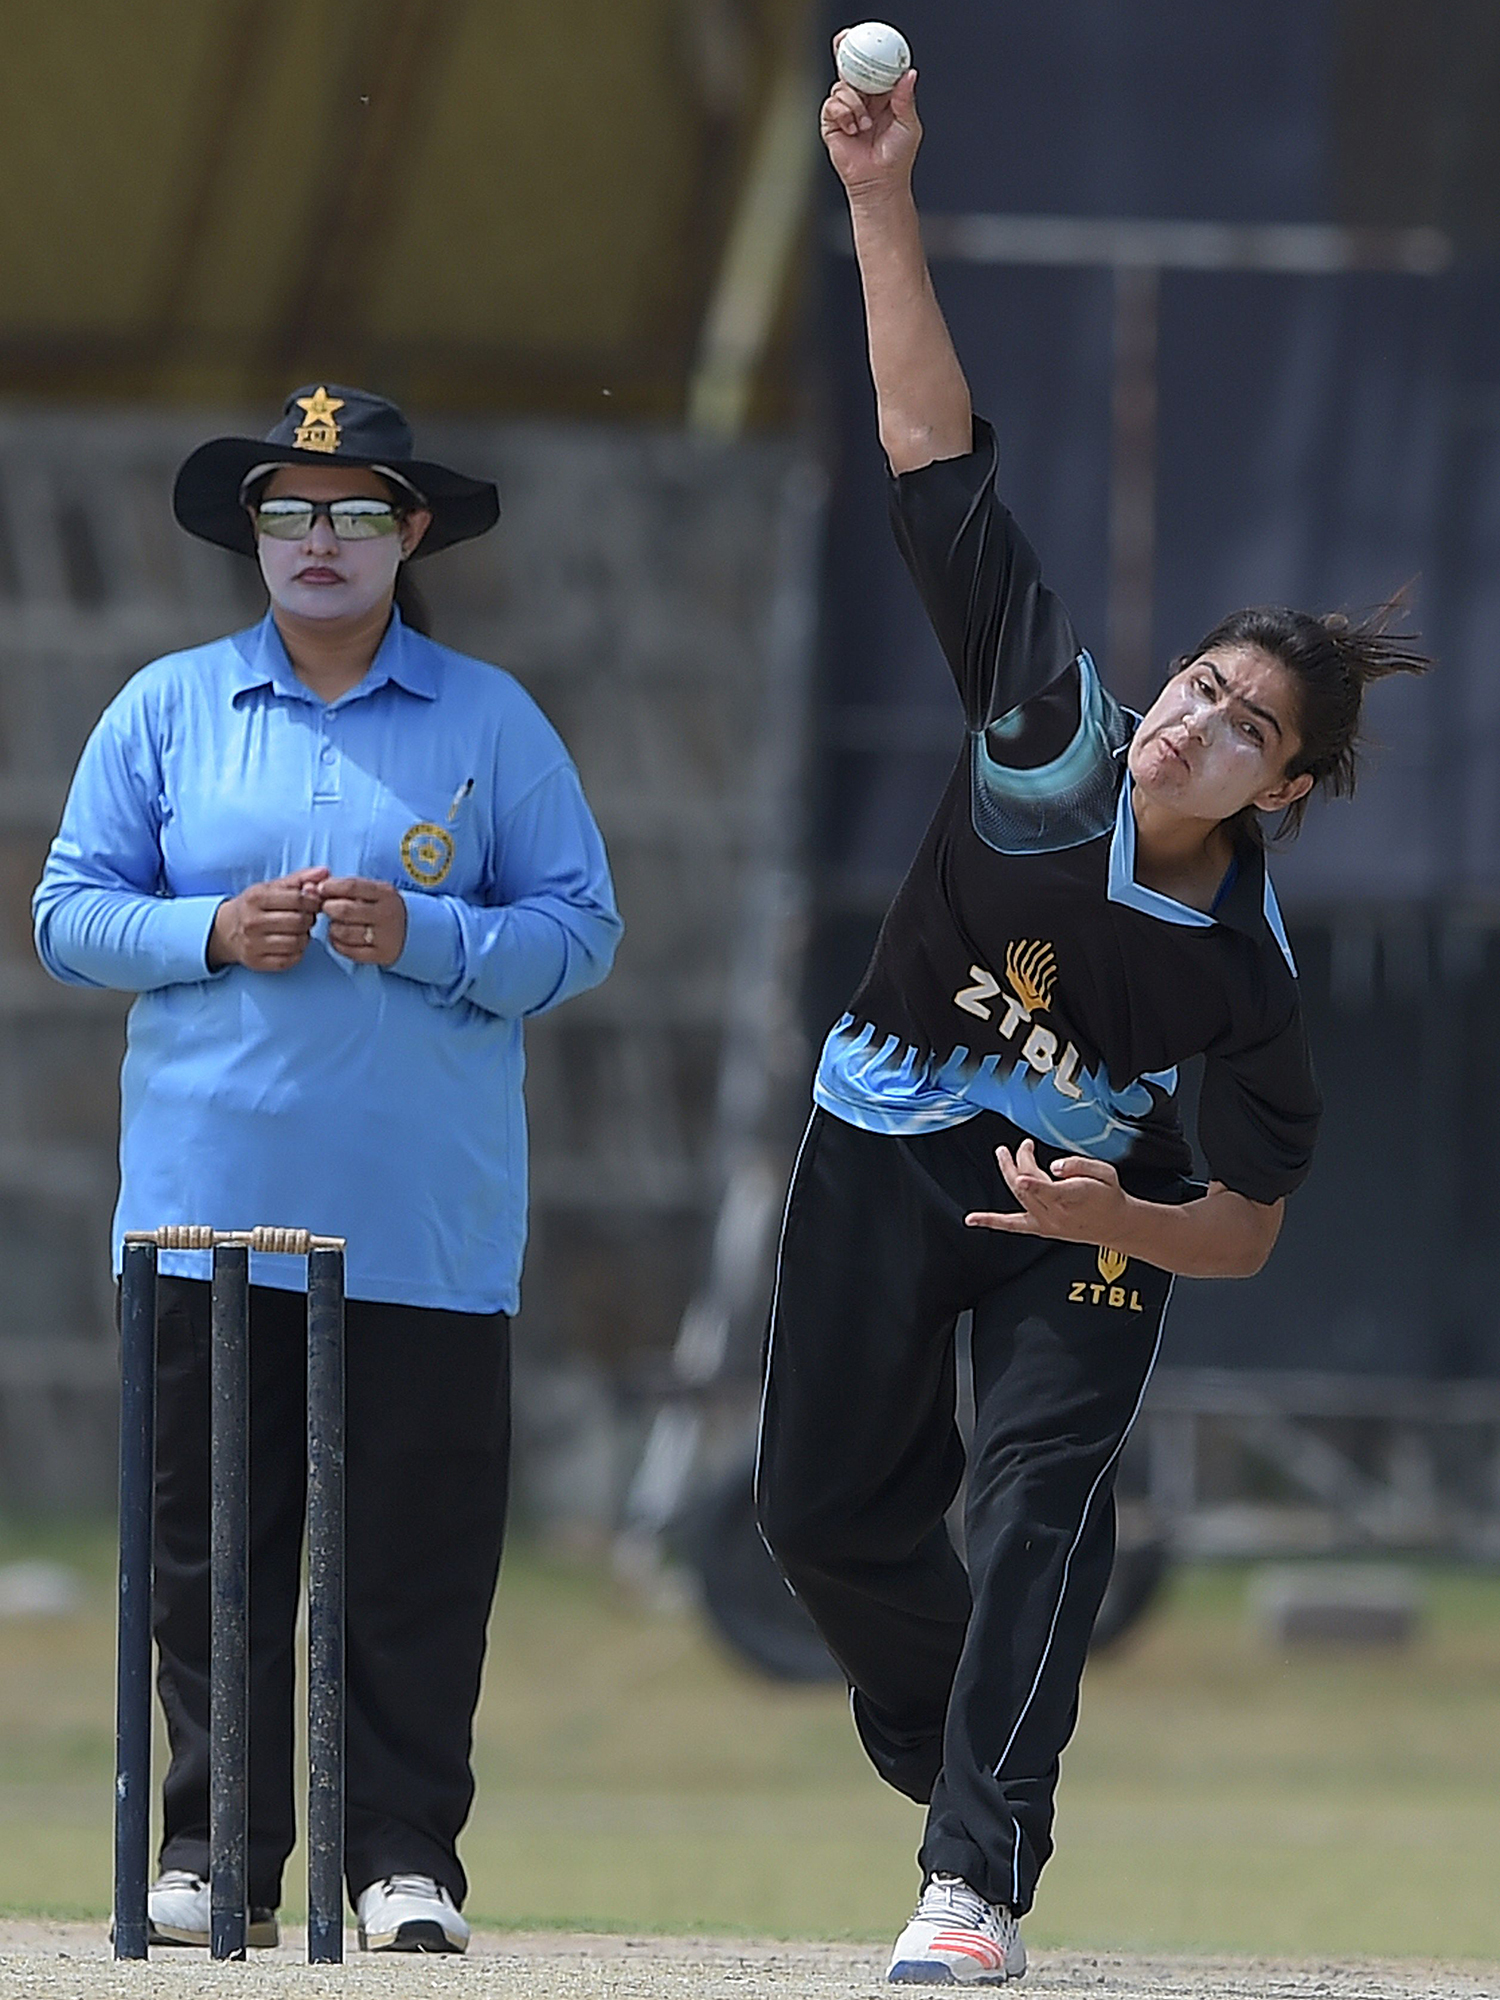 Diana Baig delivers the ball during a domestic cricket championship match in Islamabad. — AFP